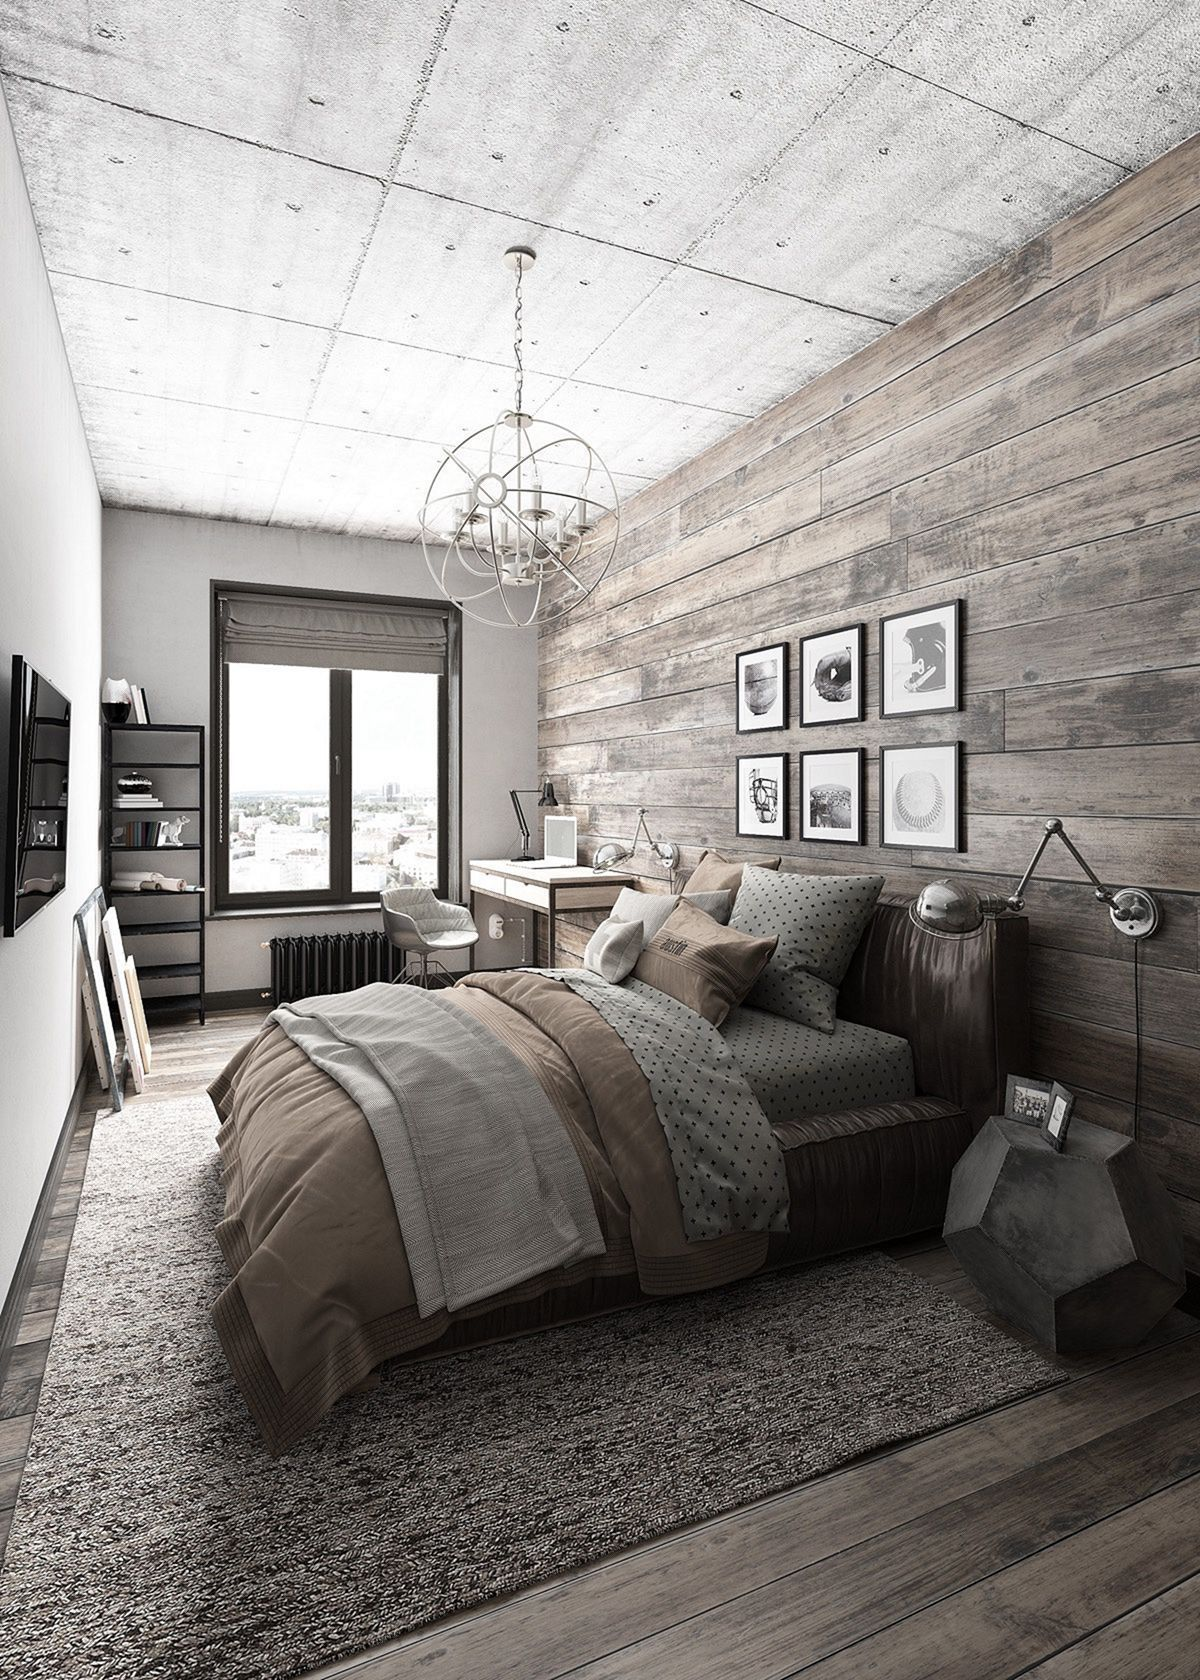 awesome industrial bedroom design ideas for unique bedroom style rh pinterest com bedroom unique style unique bedroom designs